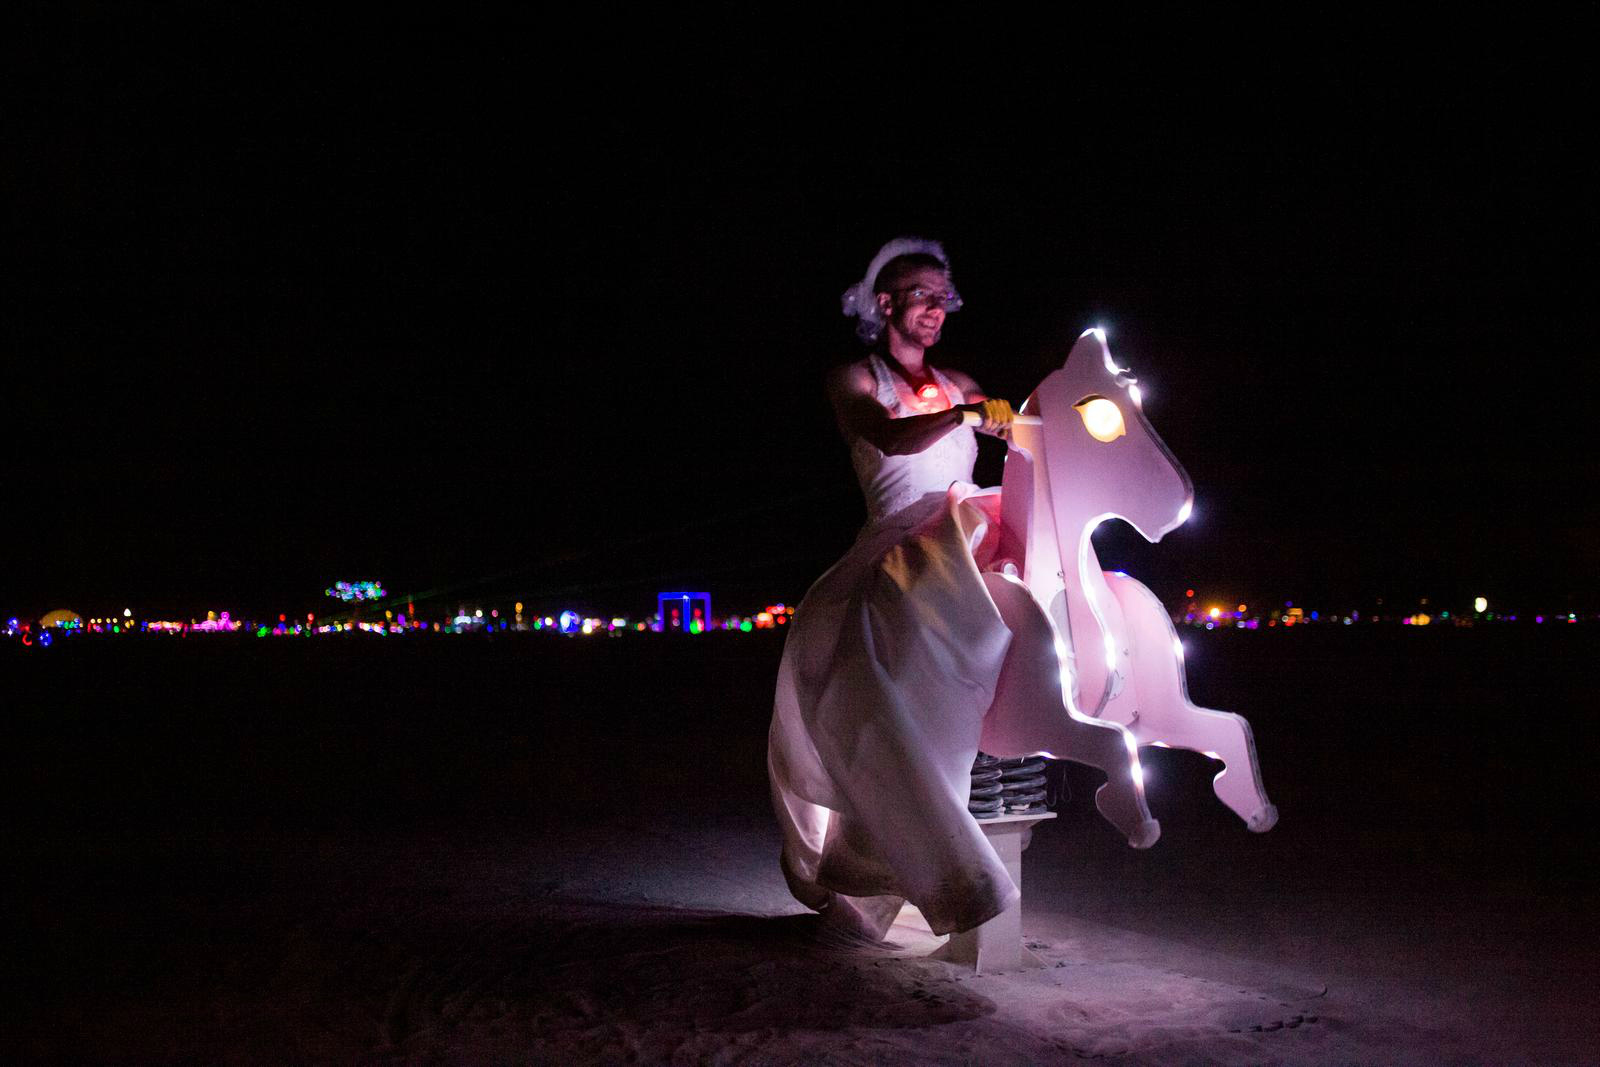 La nuit a Burning Man. Photo: Remi Jaouen